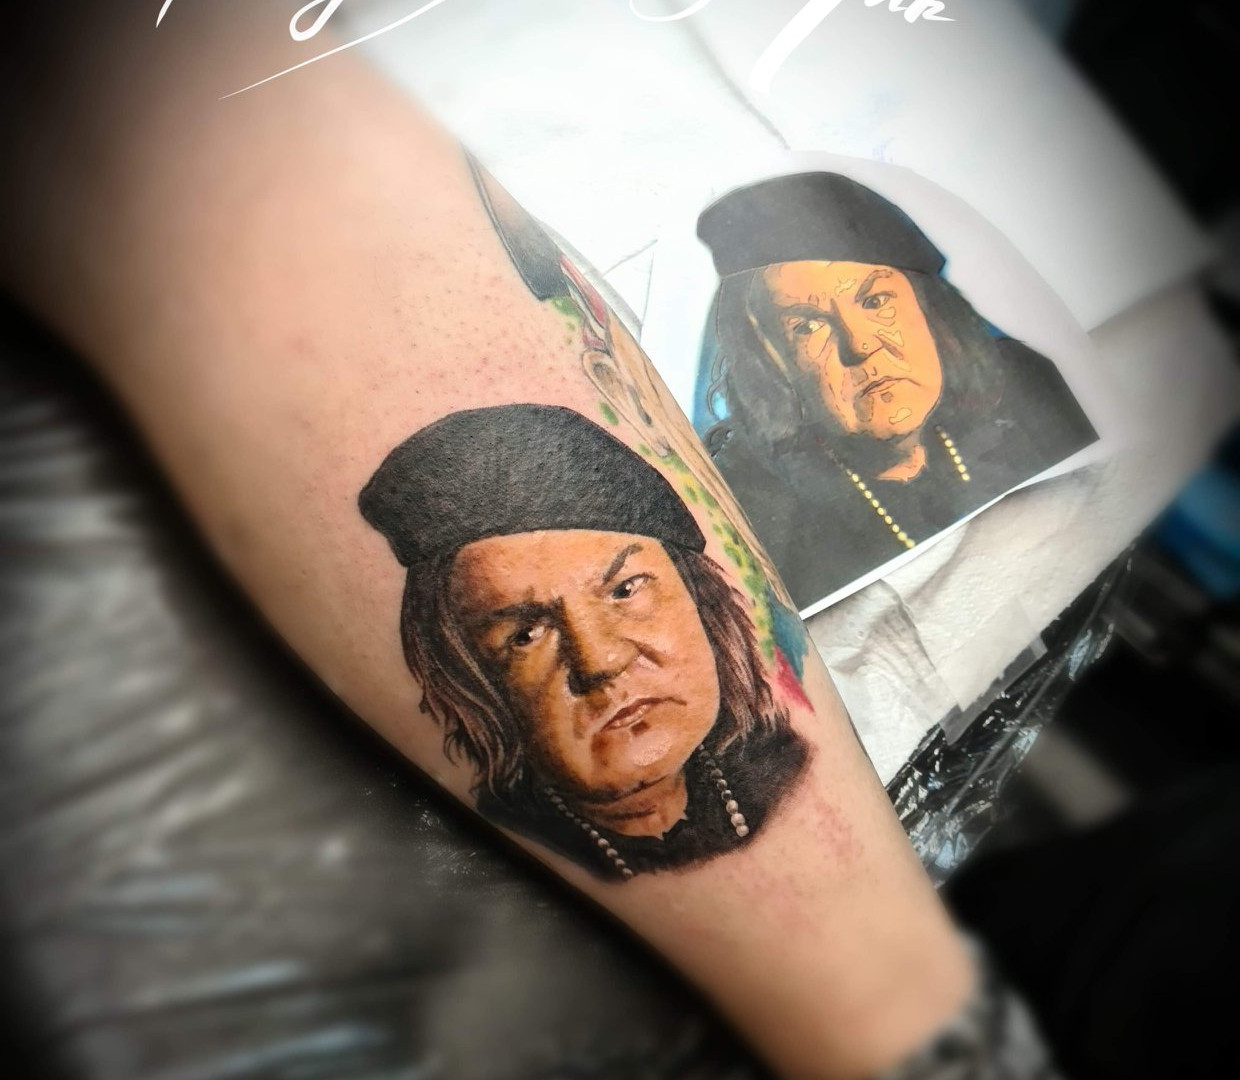 Mamma Fratelli from the Goonies